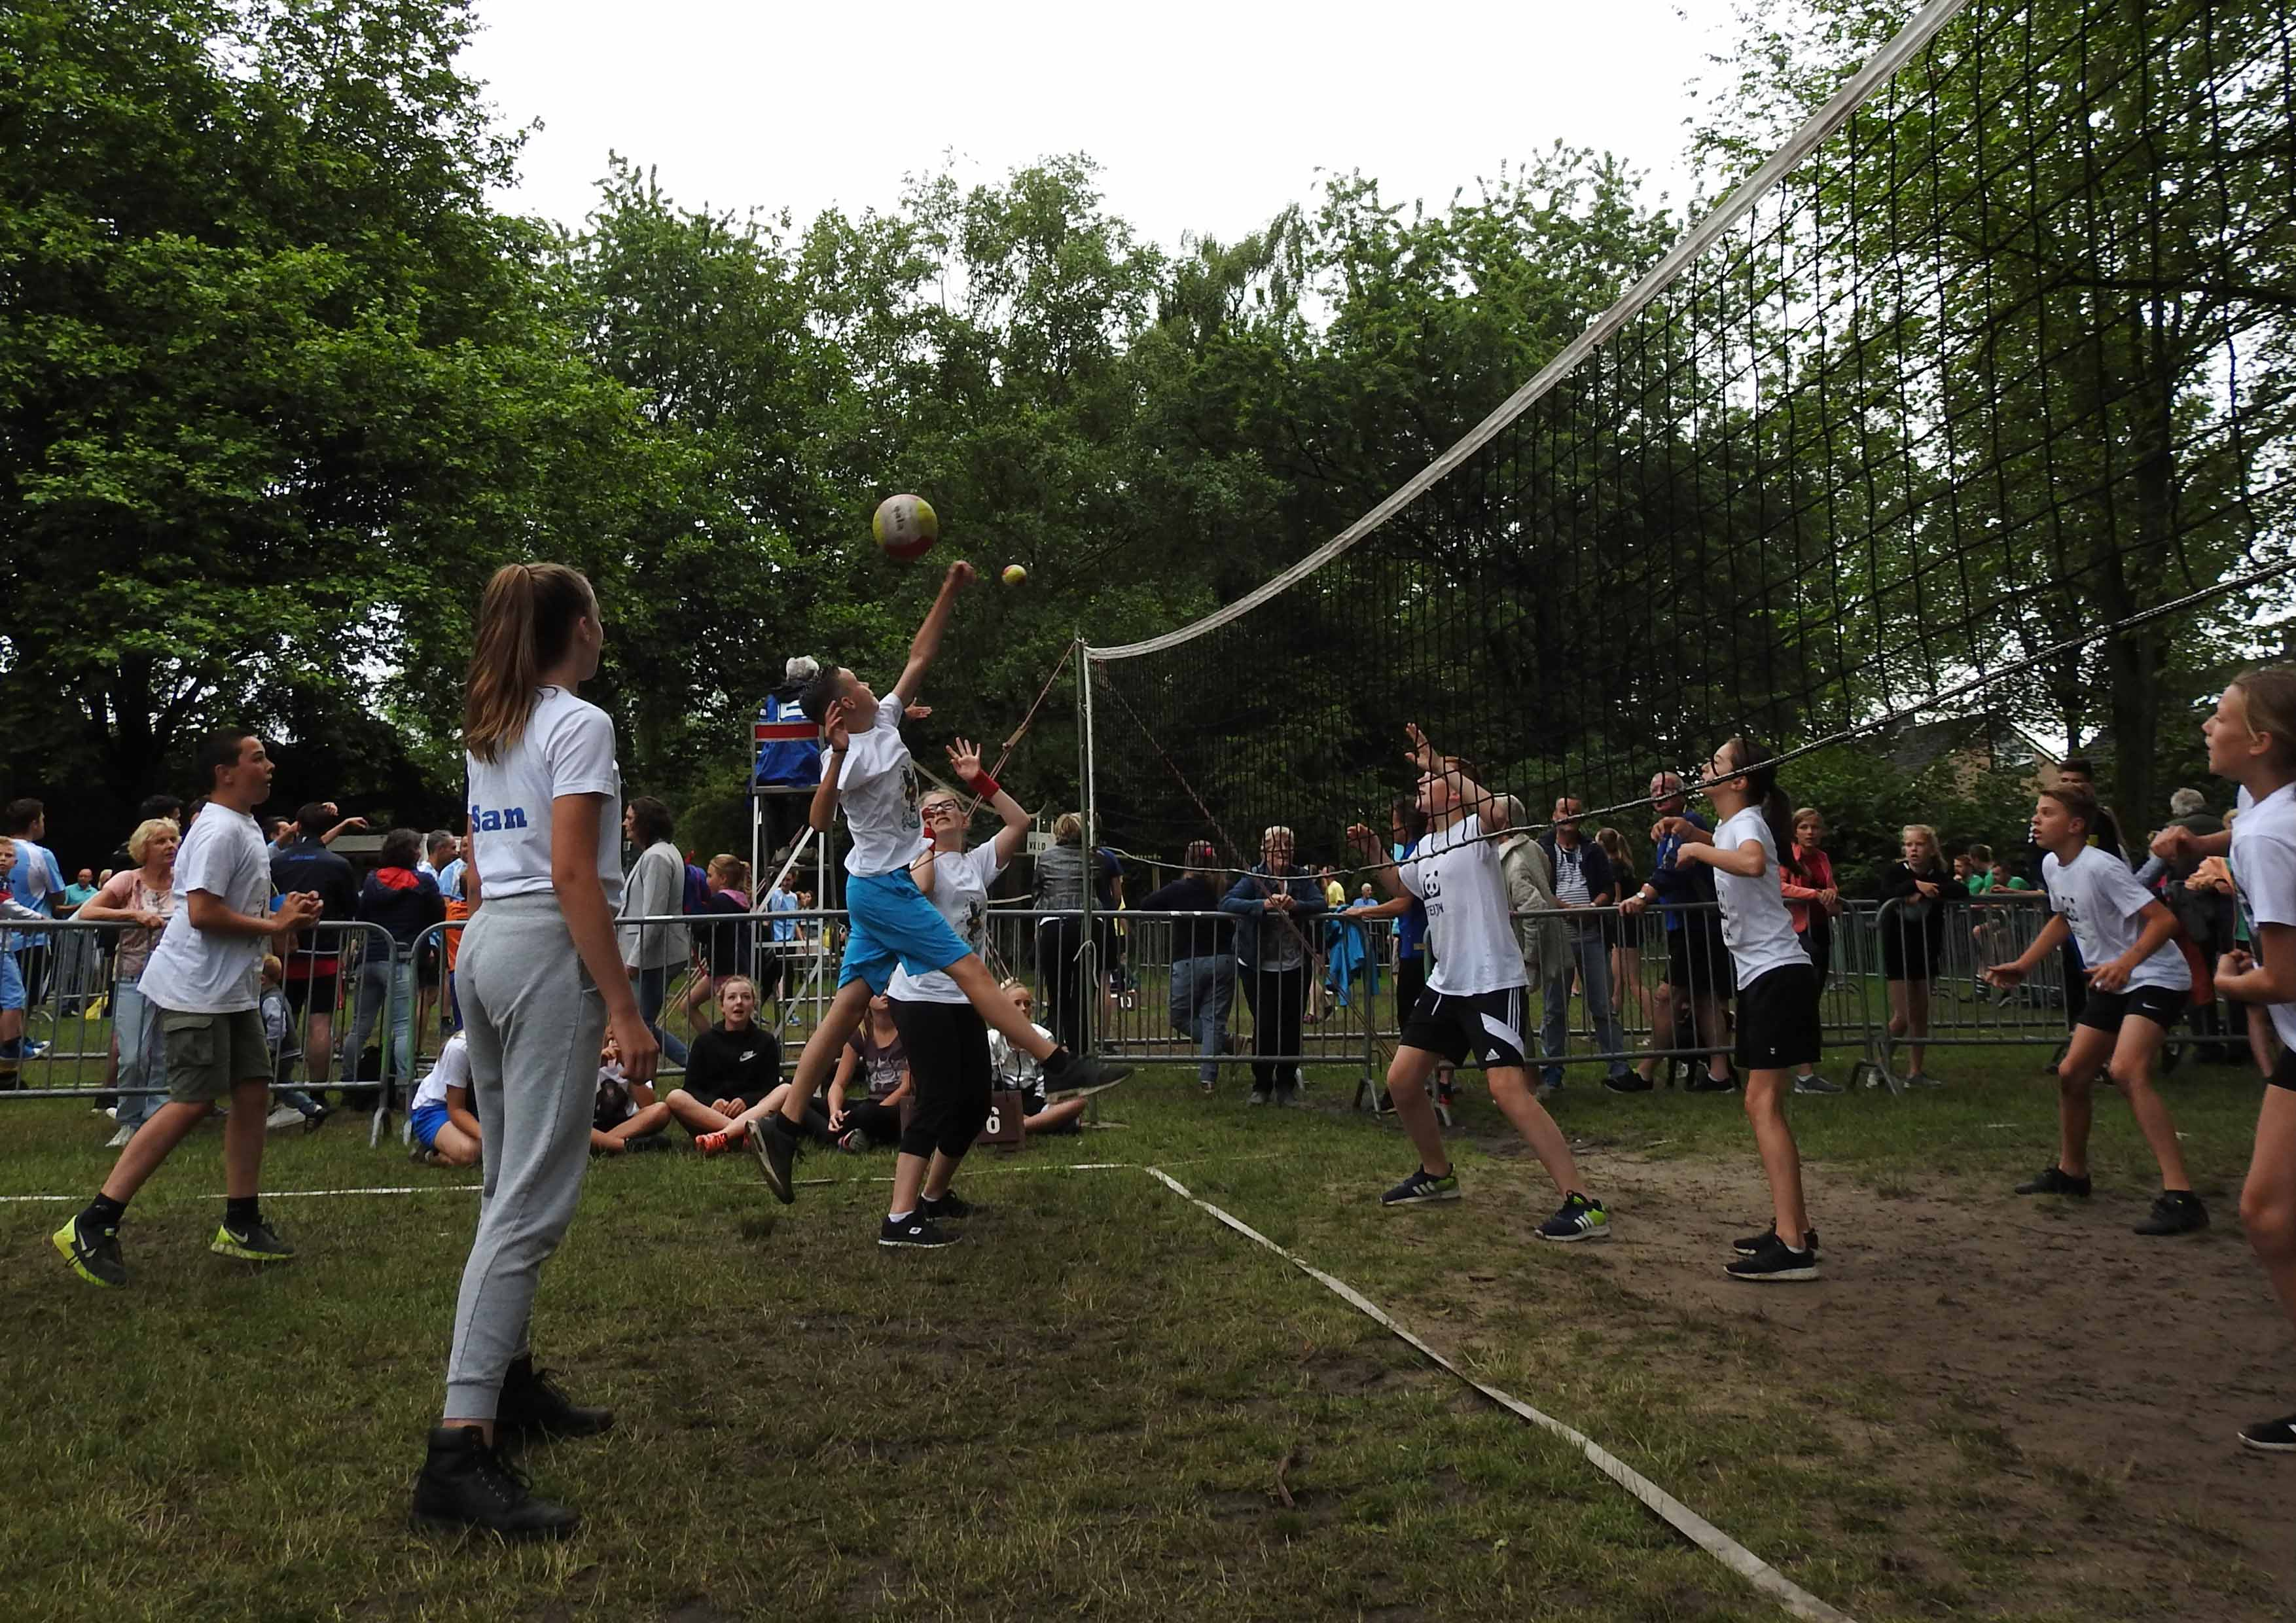 2017-06-29_BB_Straatvolleybal (07)